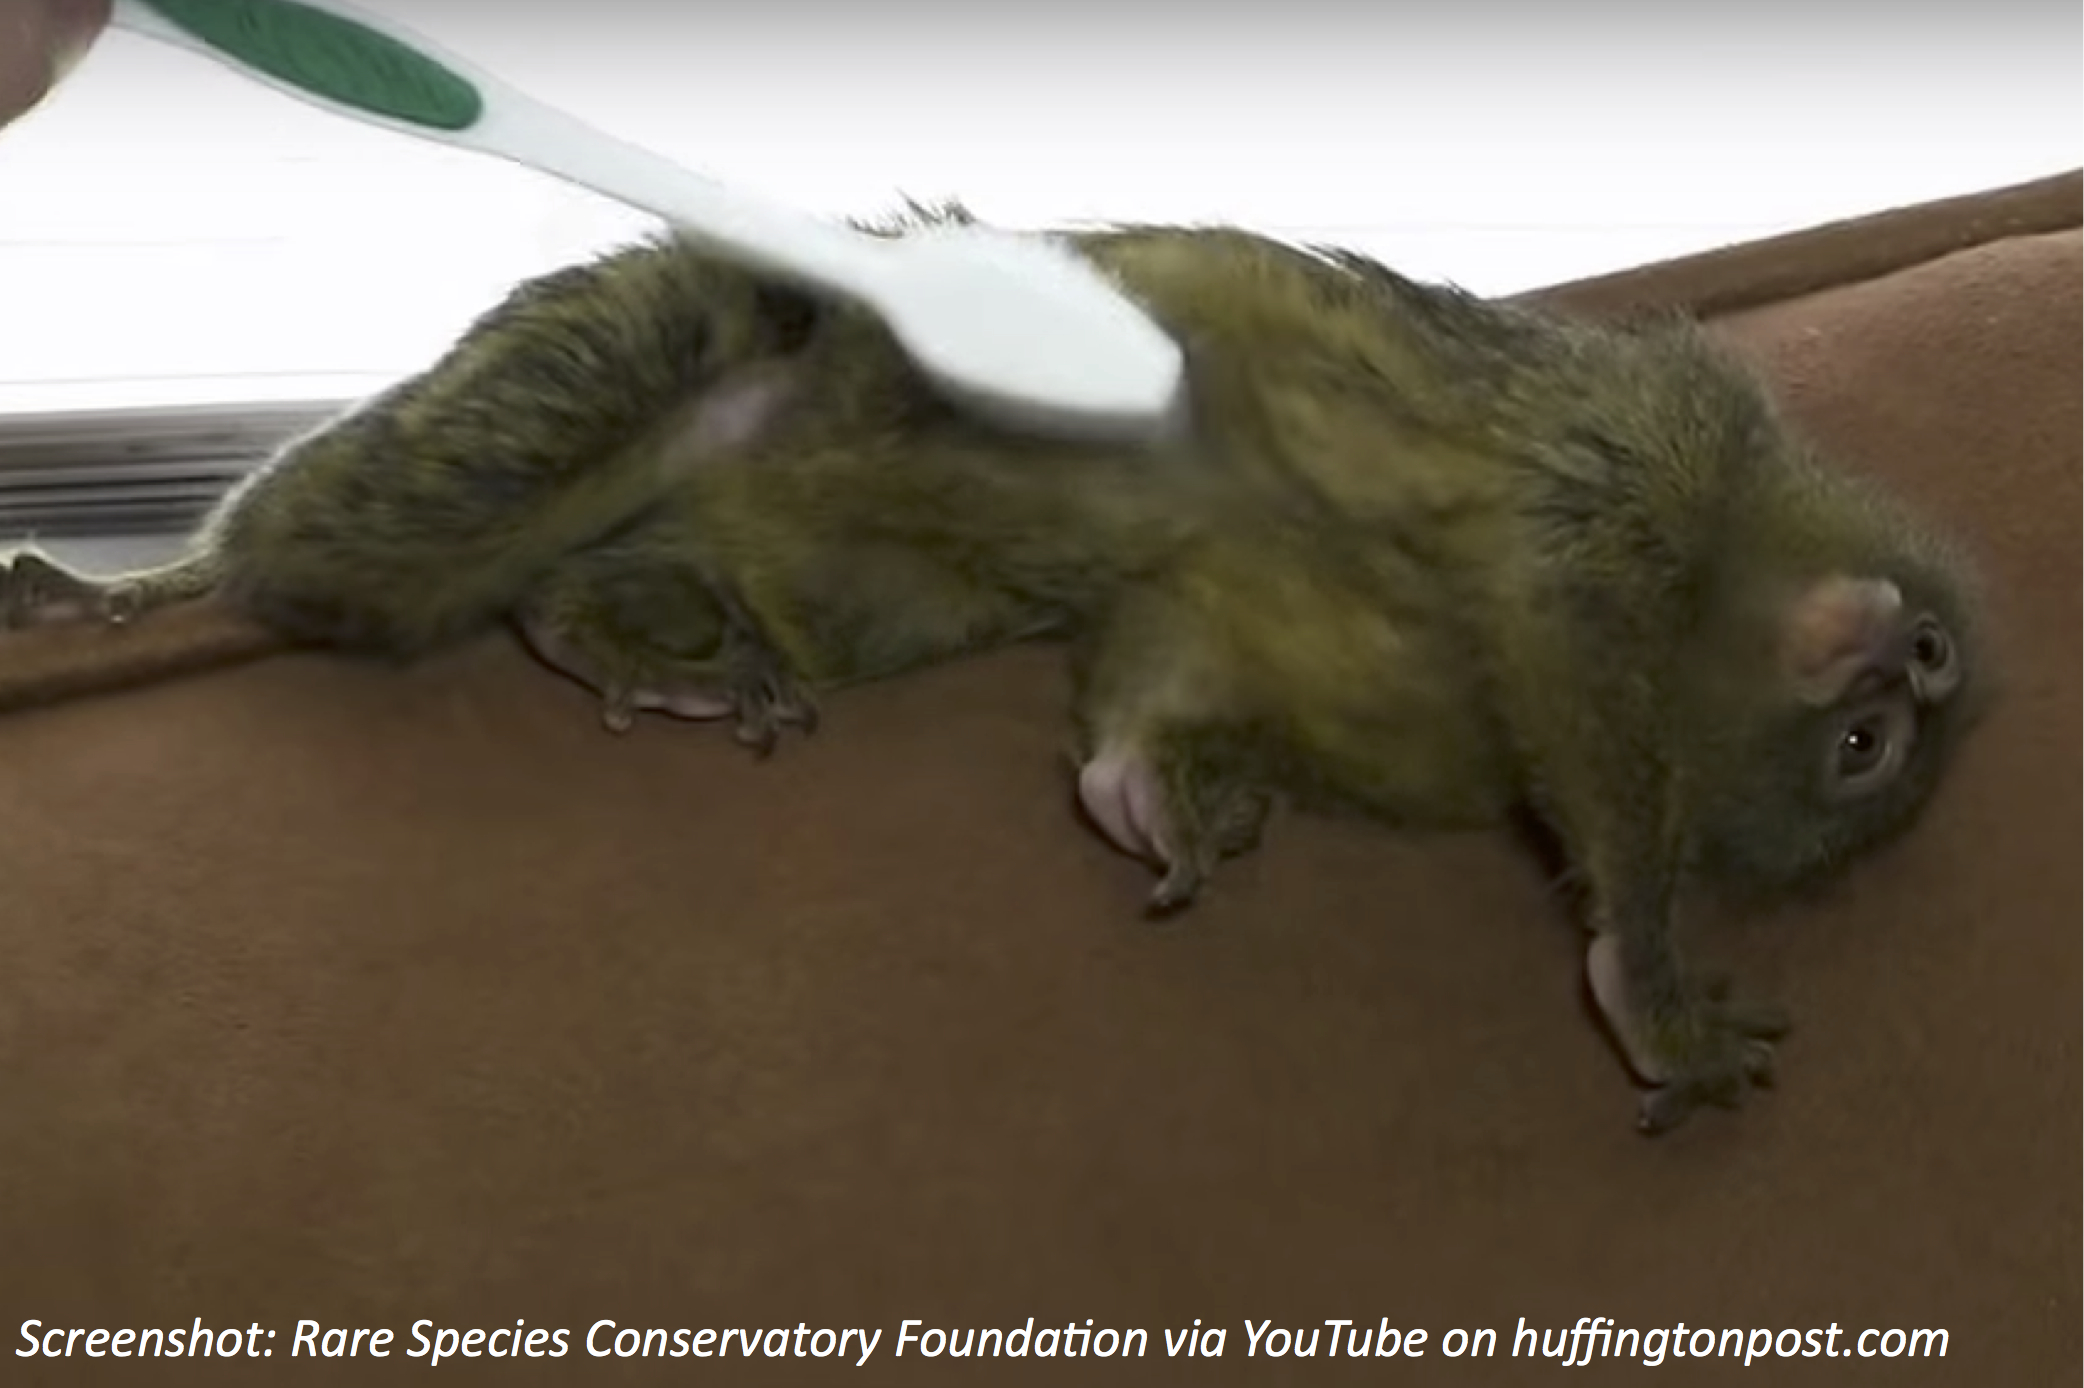 How Monkeys Use a Toothbrush